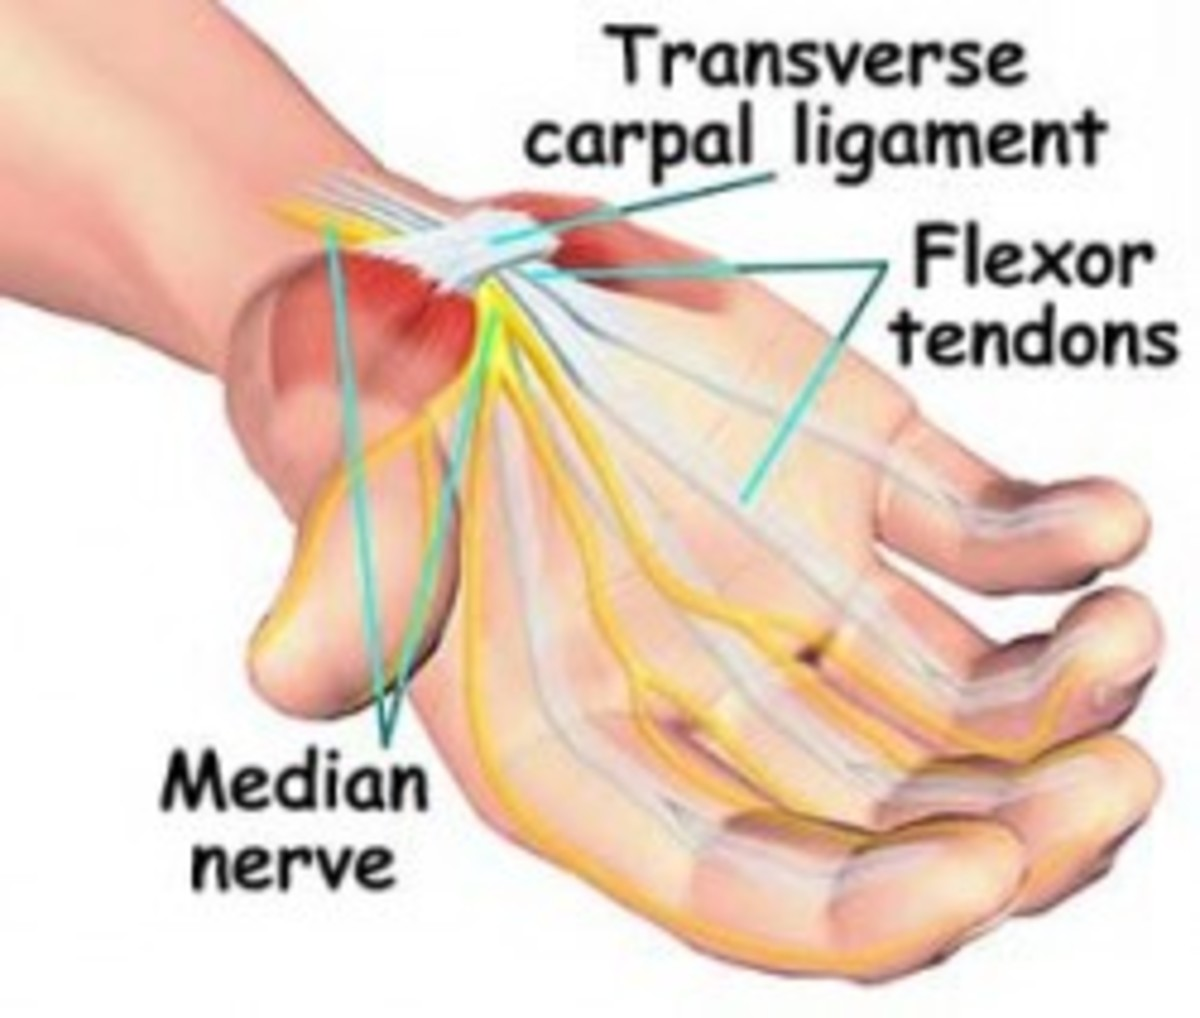 Diagram of Median nerve (Carpal tunnel)